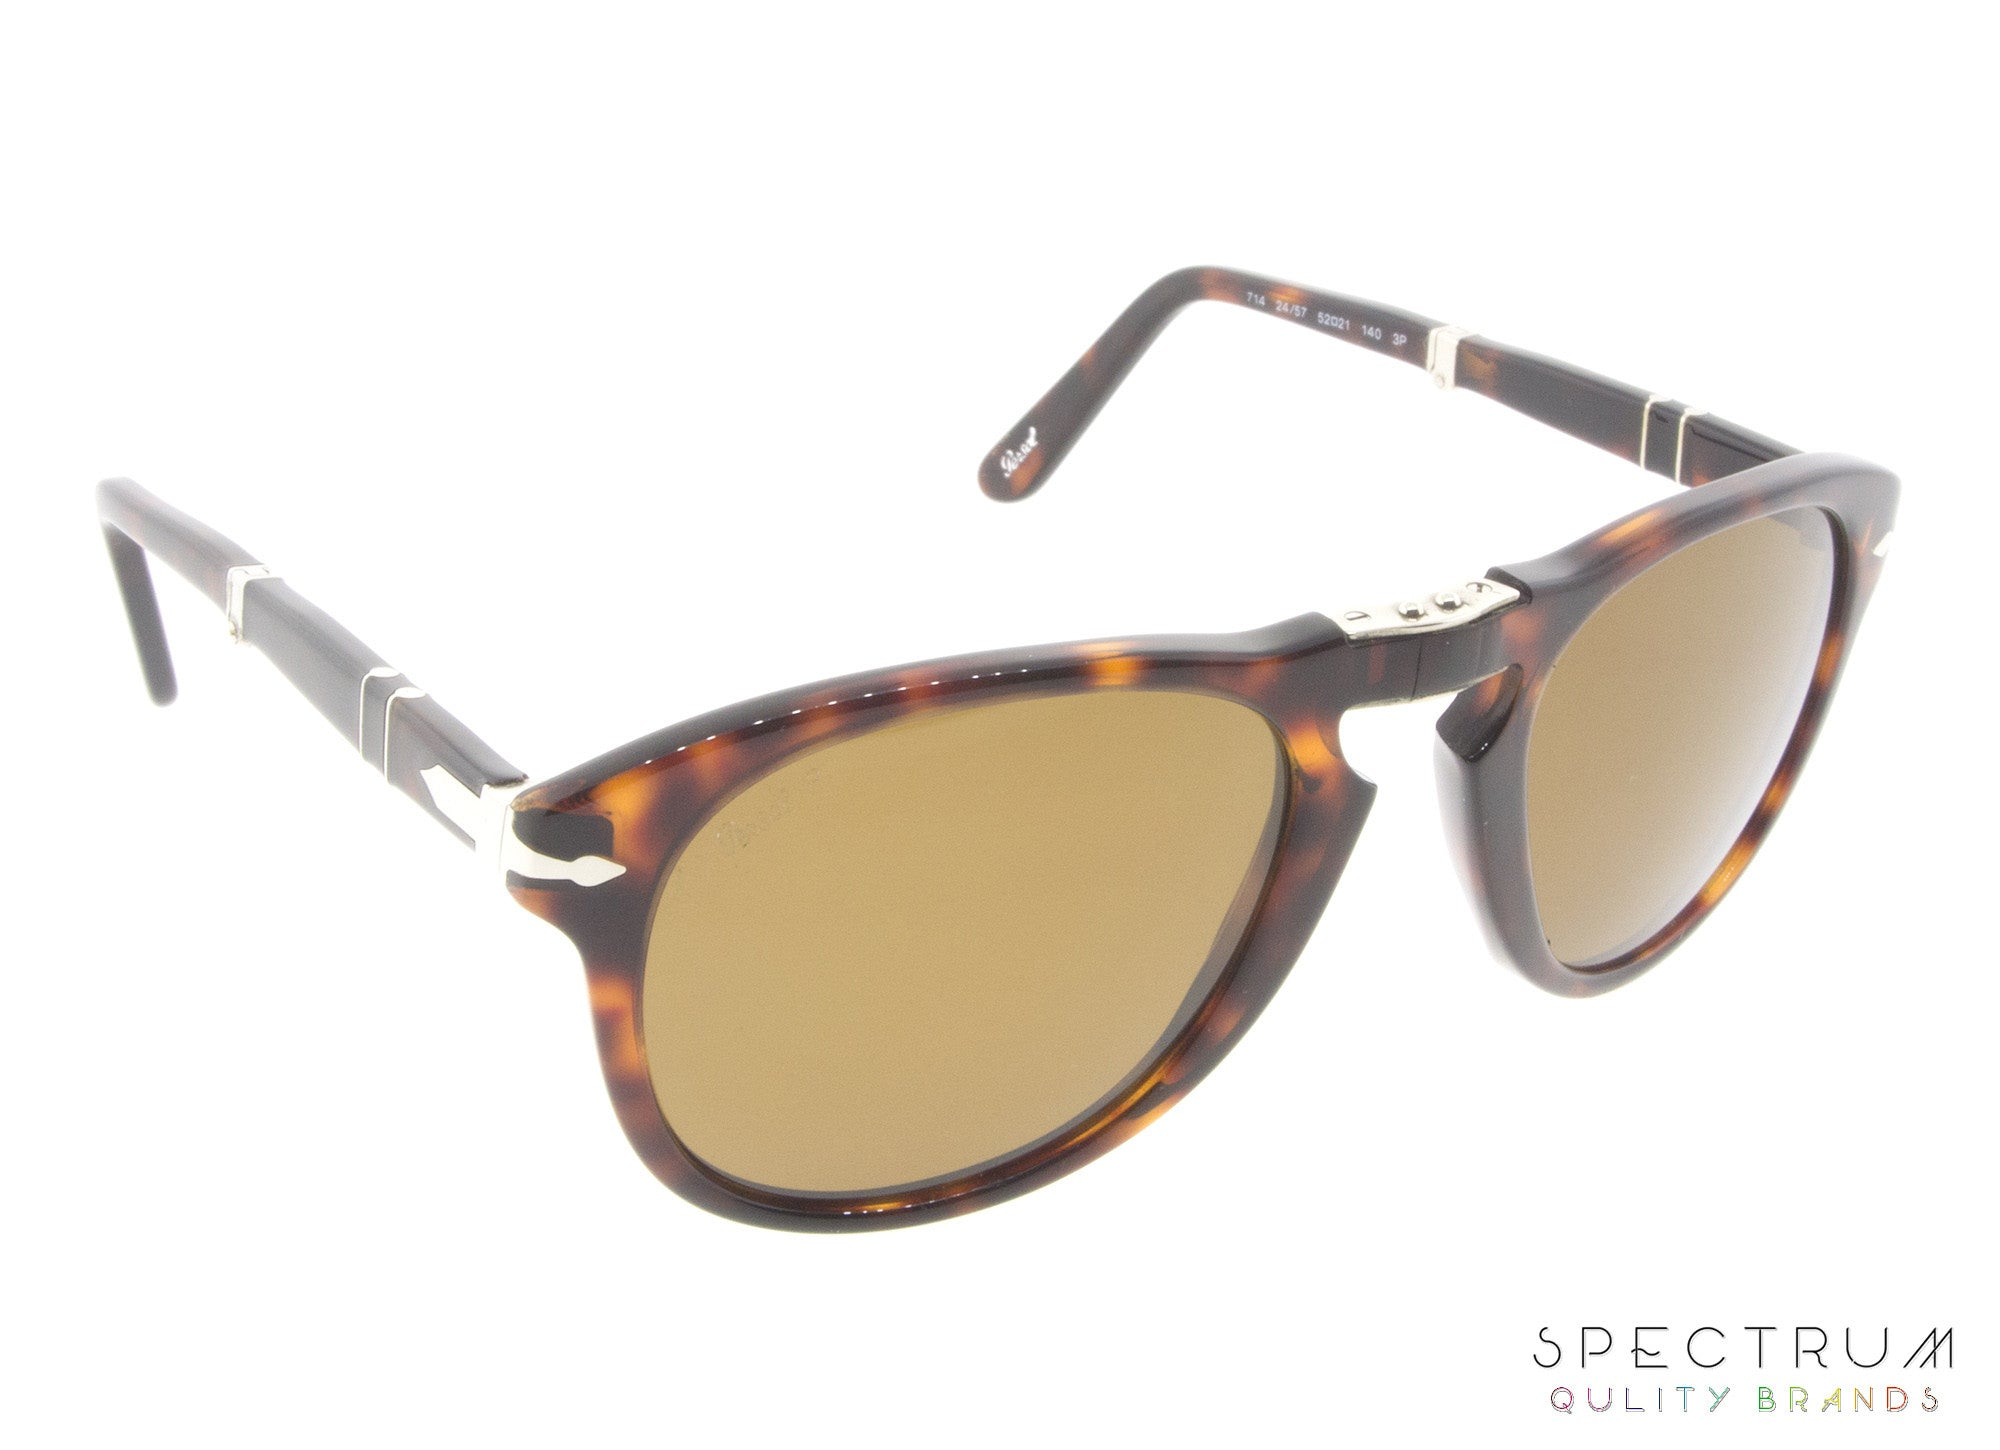 1d4f917ed054 Persol Folding Sunglasses 0714 24/57 Havana with Brown Polarized Lenses  Size 52